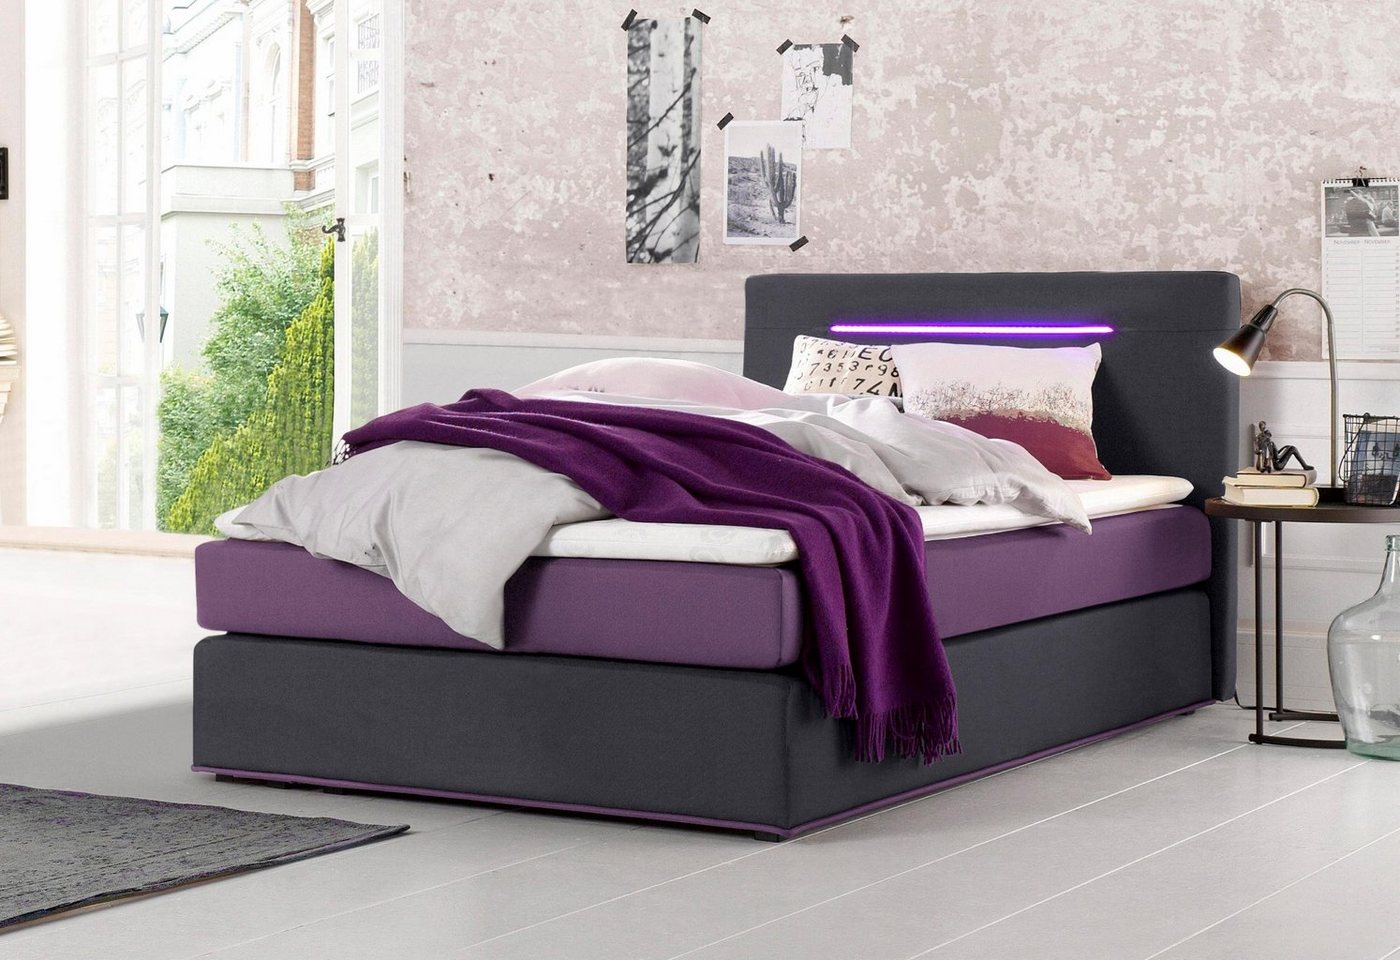 Collection AB boxspring inclusief LED-verlichting en topmatras